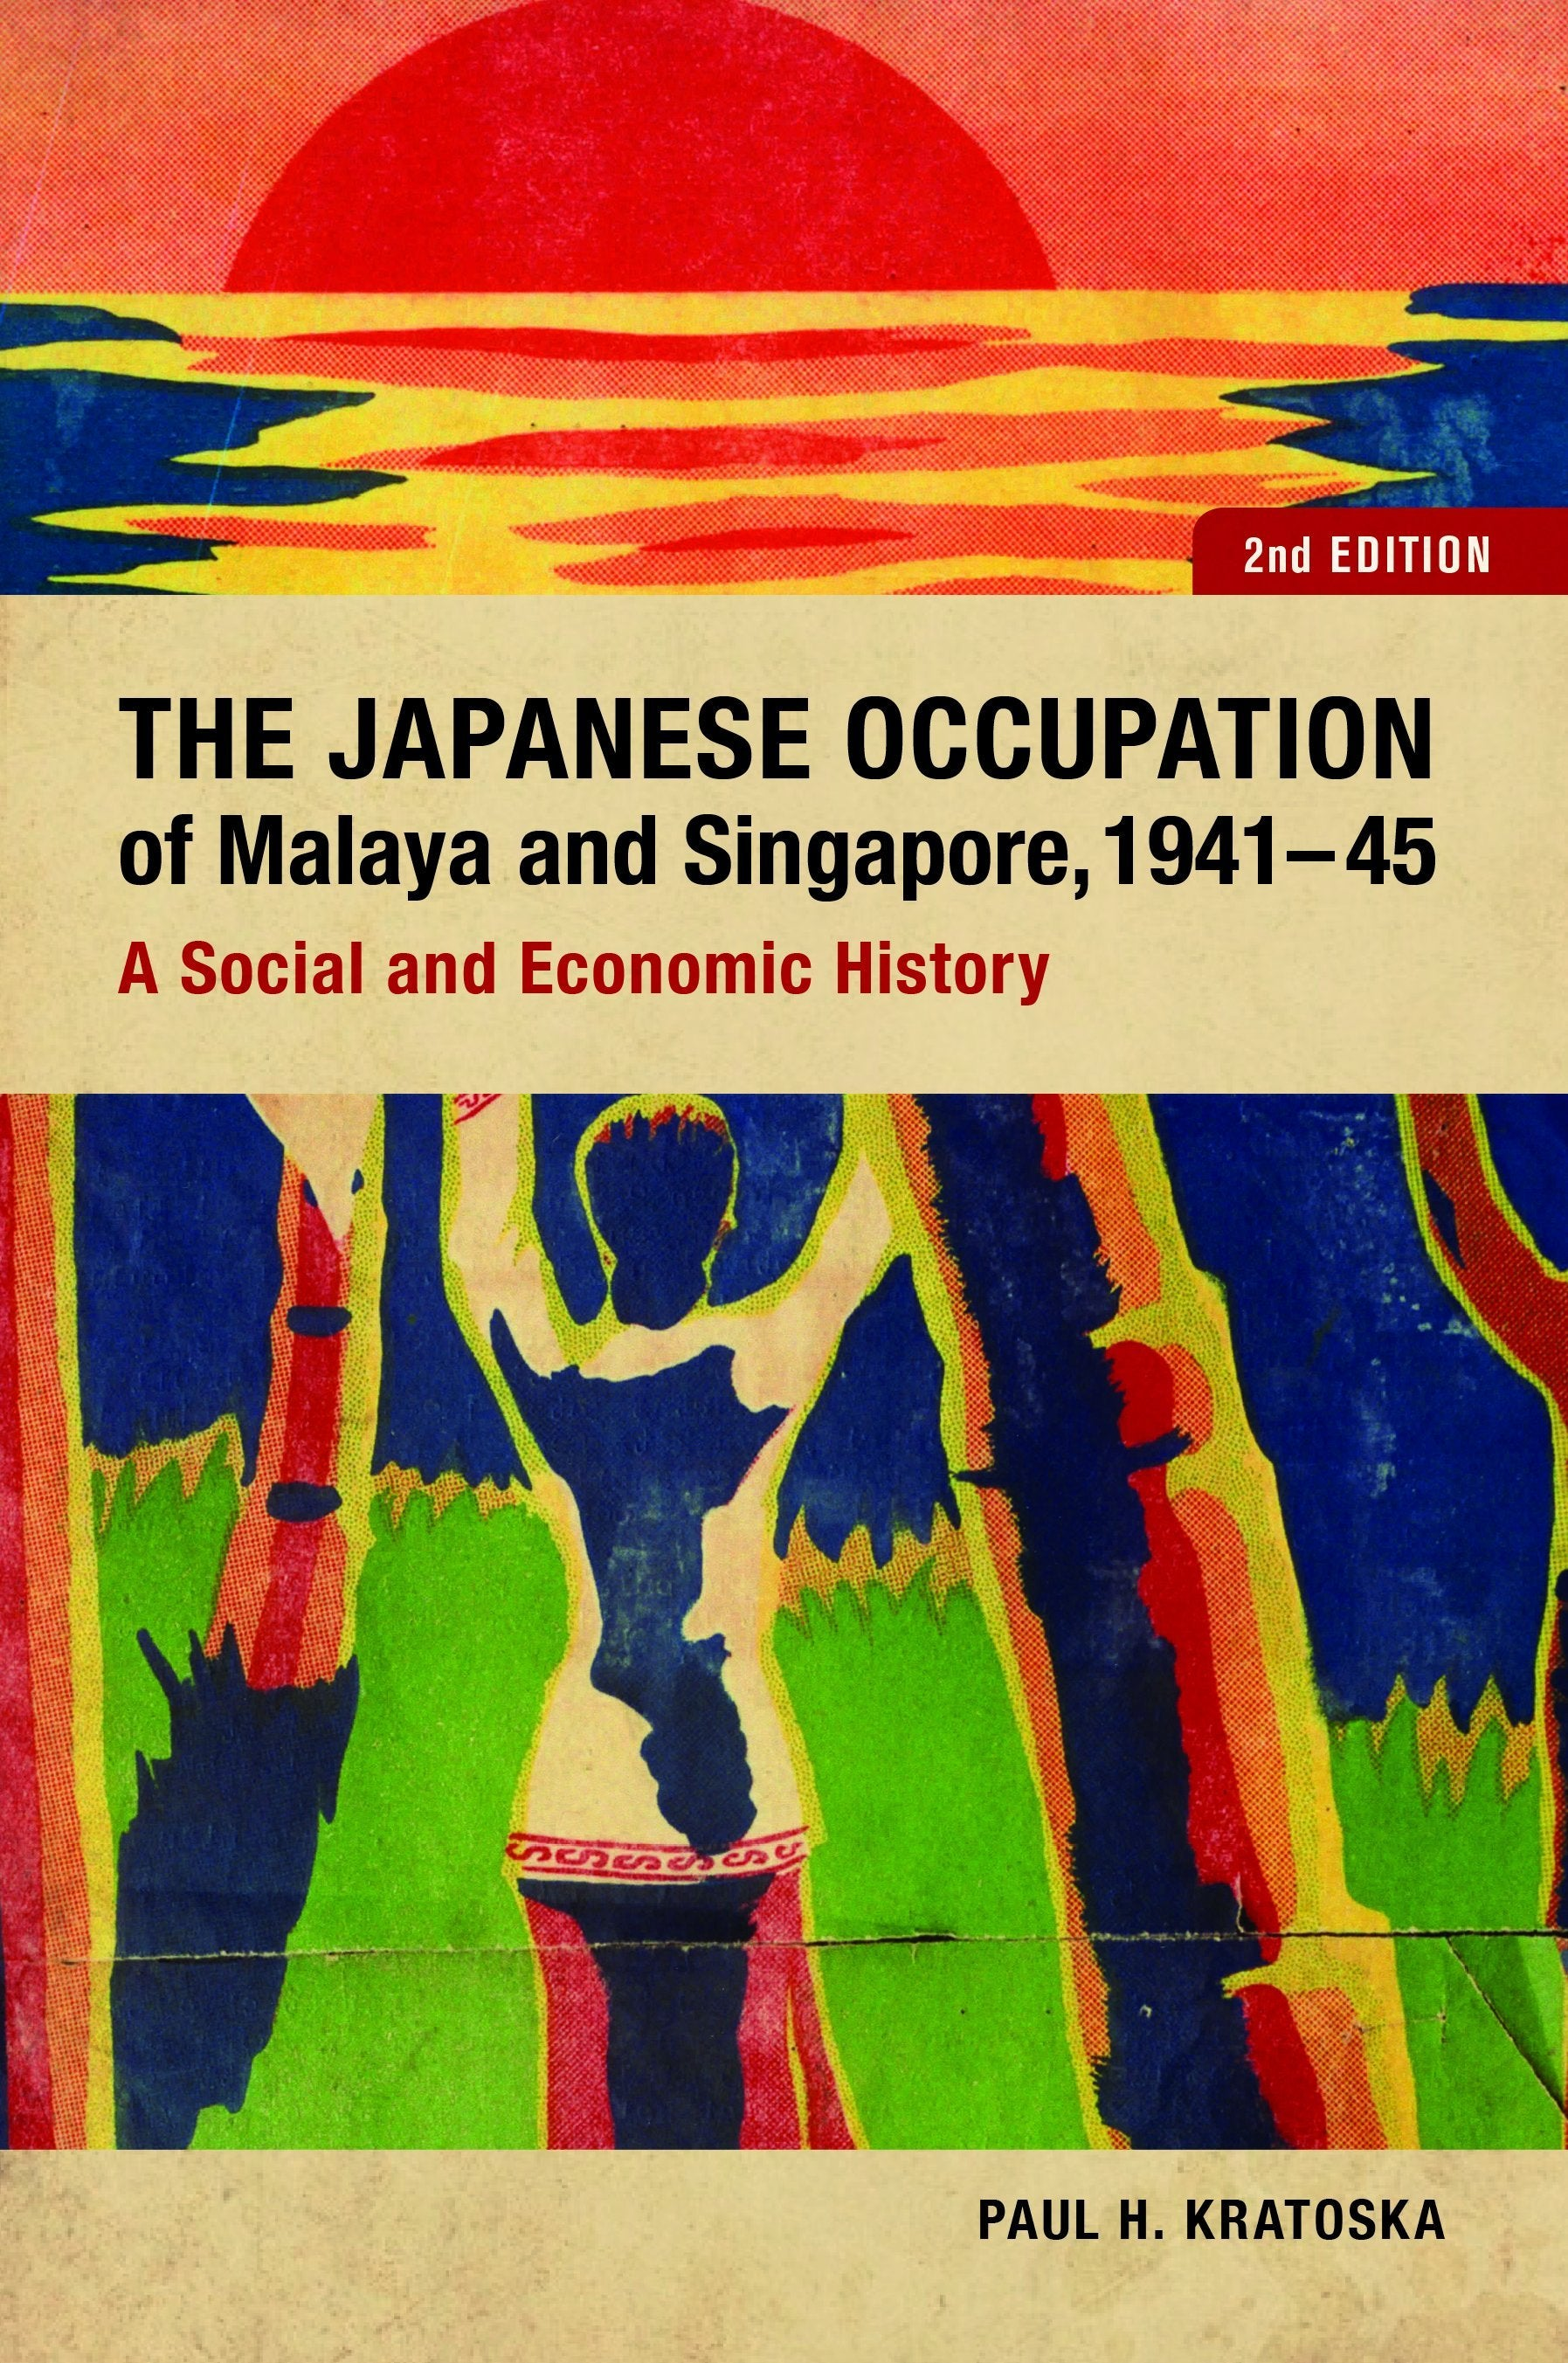 The Japanese Occupation of Malaya and Singapore, 1941-45: A Social and Economic History, 2e